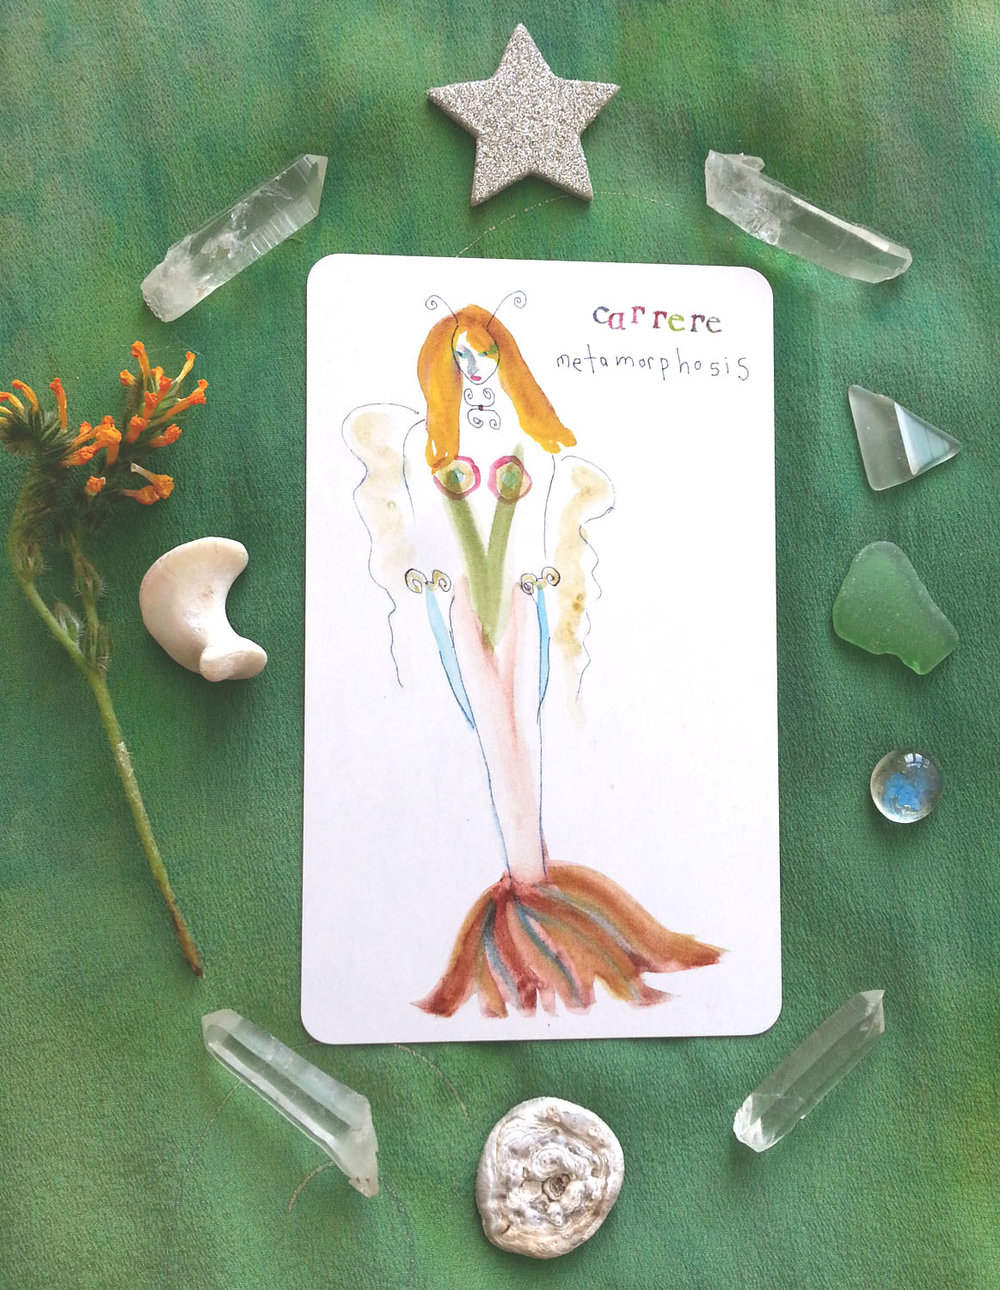 """Carerre"" by Kathy Crabbe from the Lefty Oracle Deck. Purchase a hand signed print    here   ."